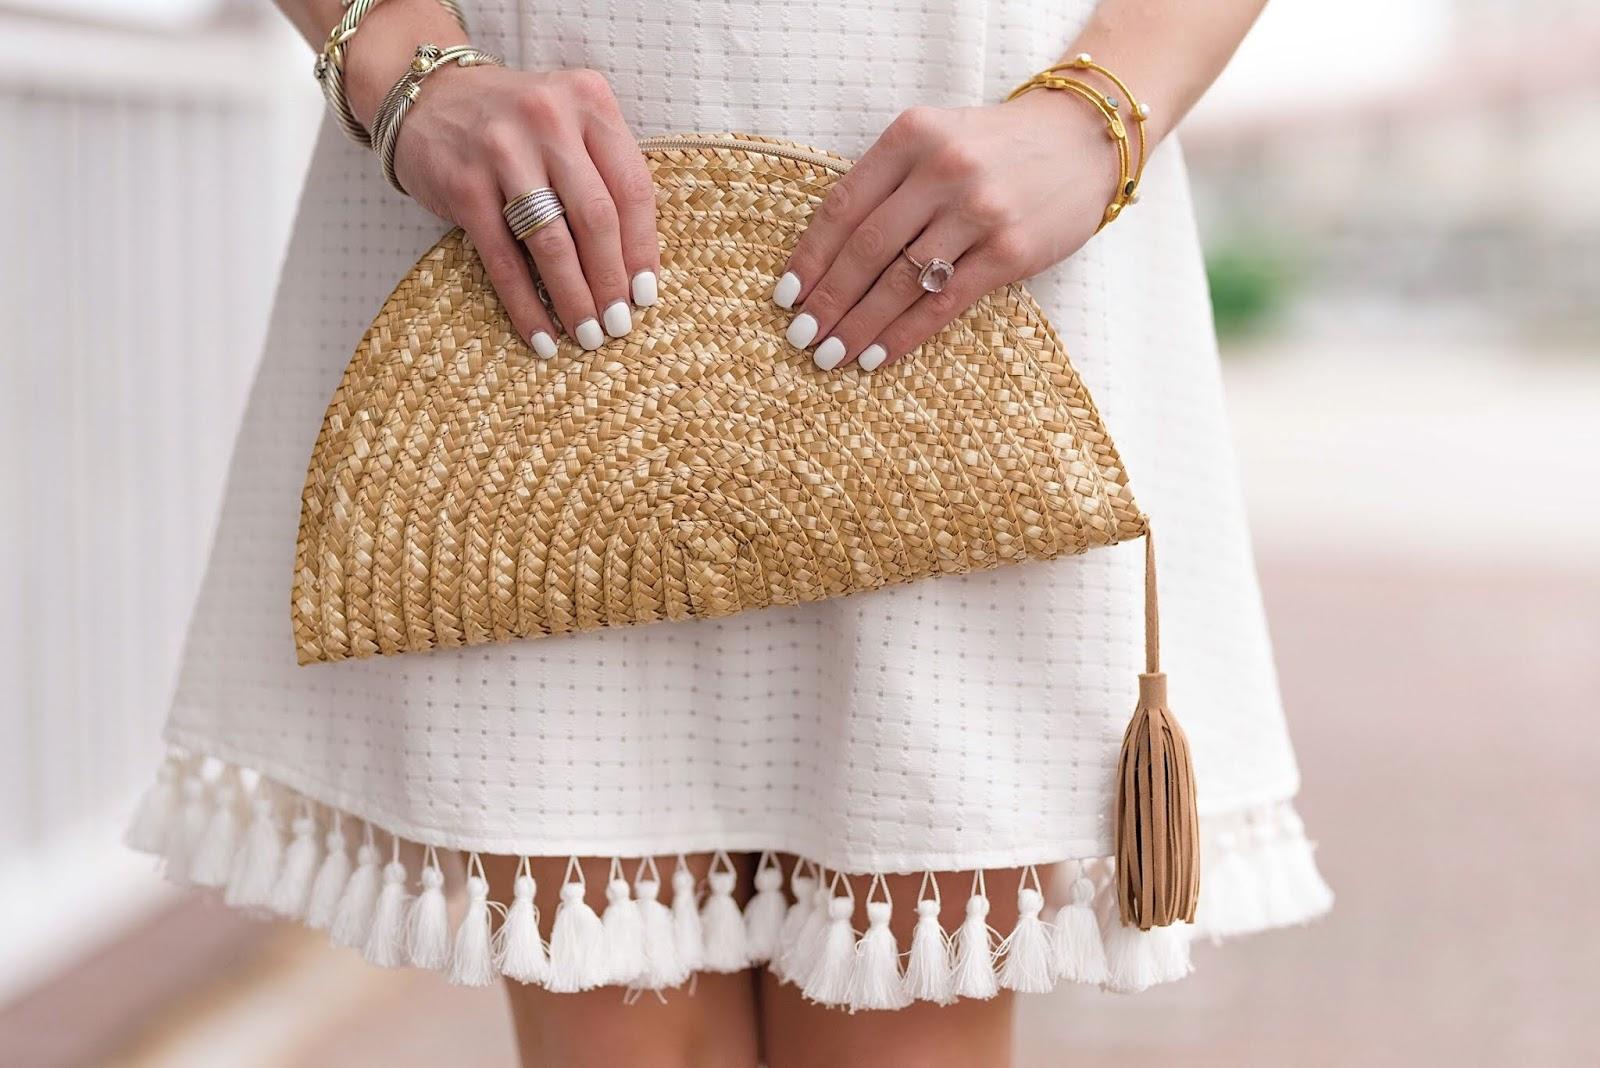 Tassel Hem White Dress + Half-Moon Clutch - Something Delightful Blog